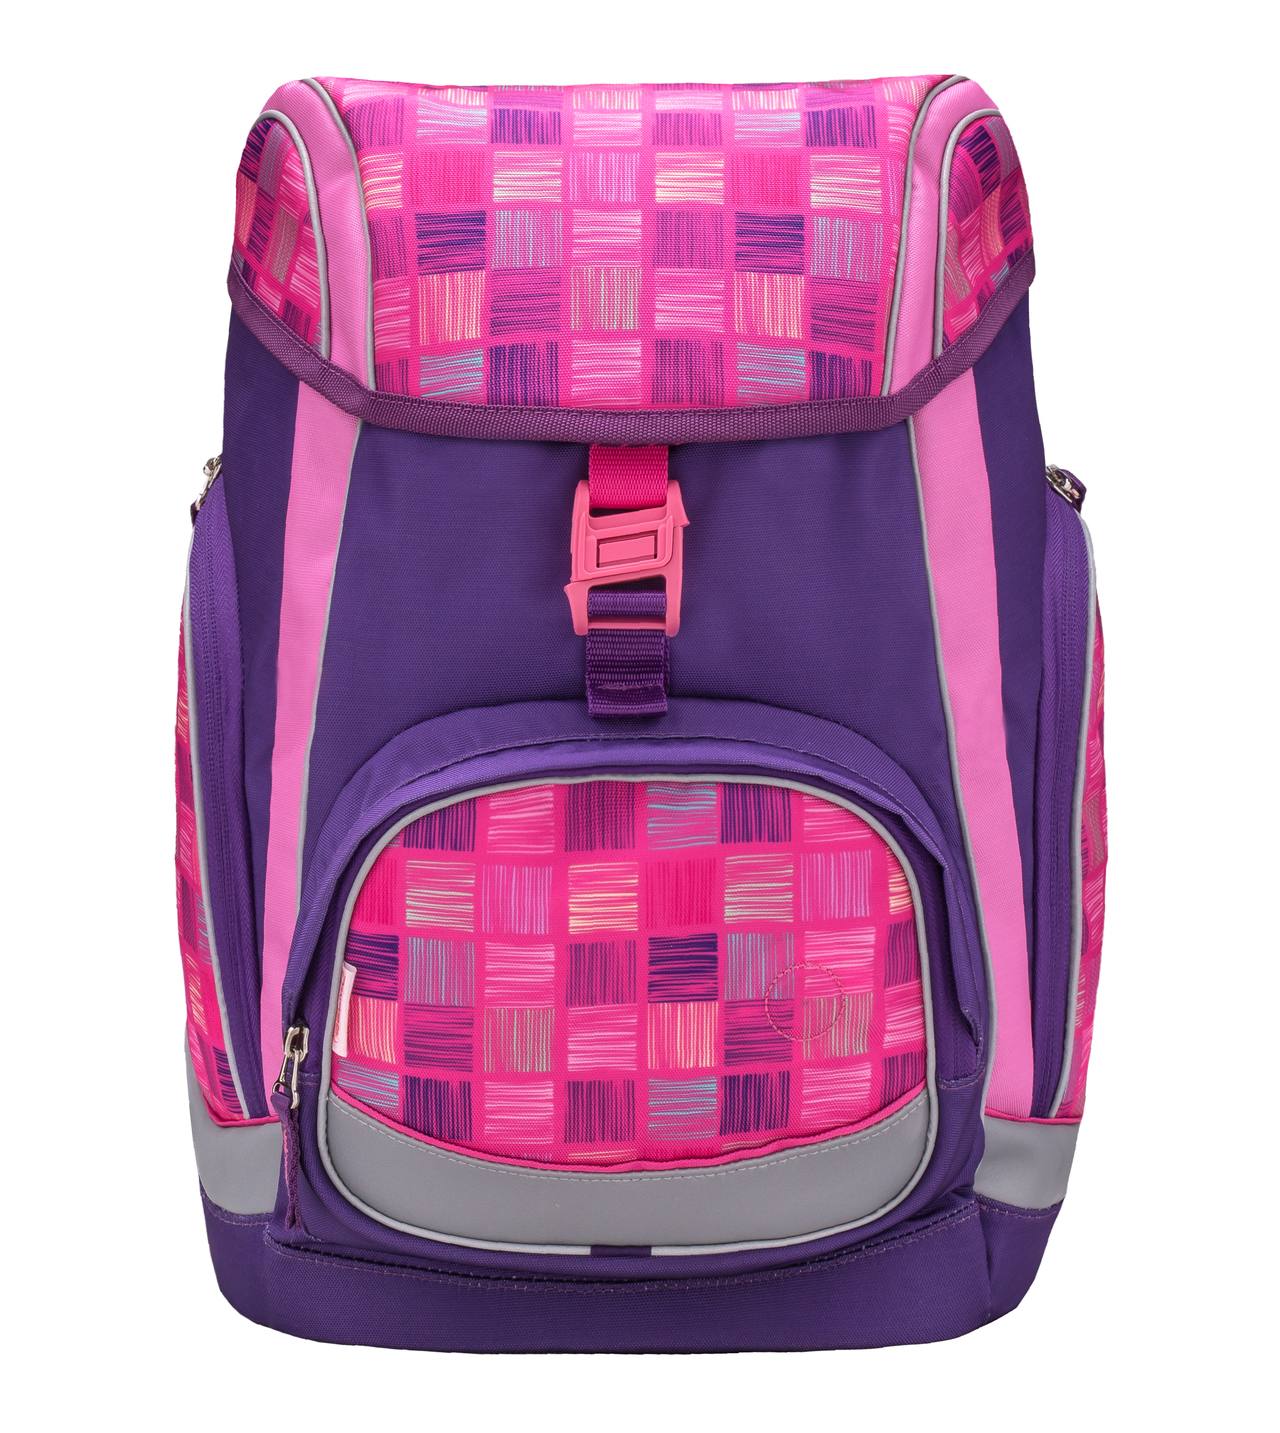 Ранец-рюкзак Belmil Comfy Pack 405-11/683 цвет Pink & Purple Harmony+ дождевик, - фото 2